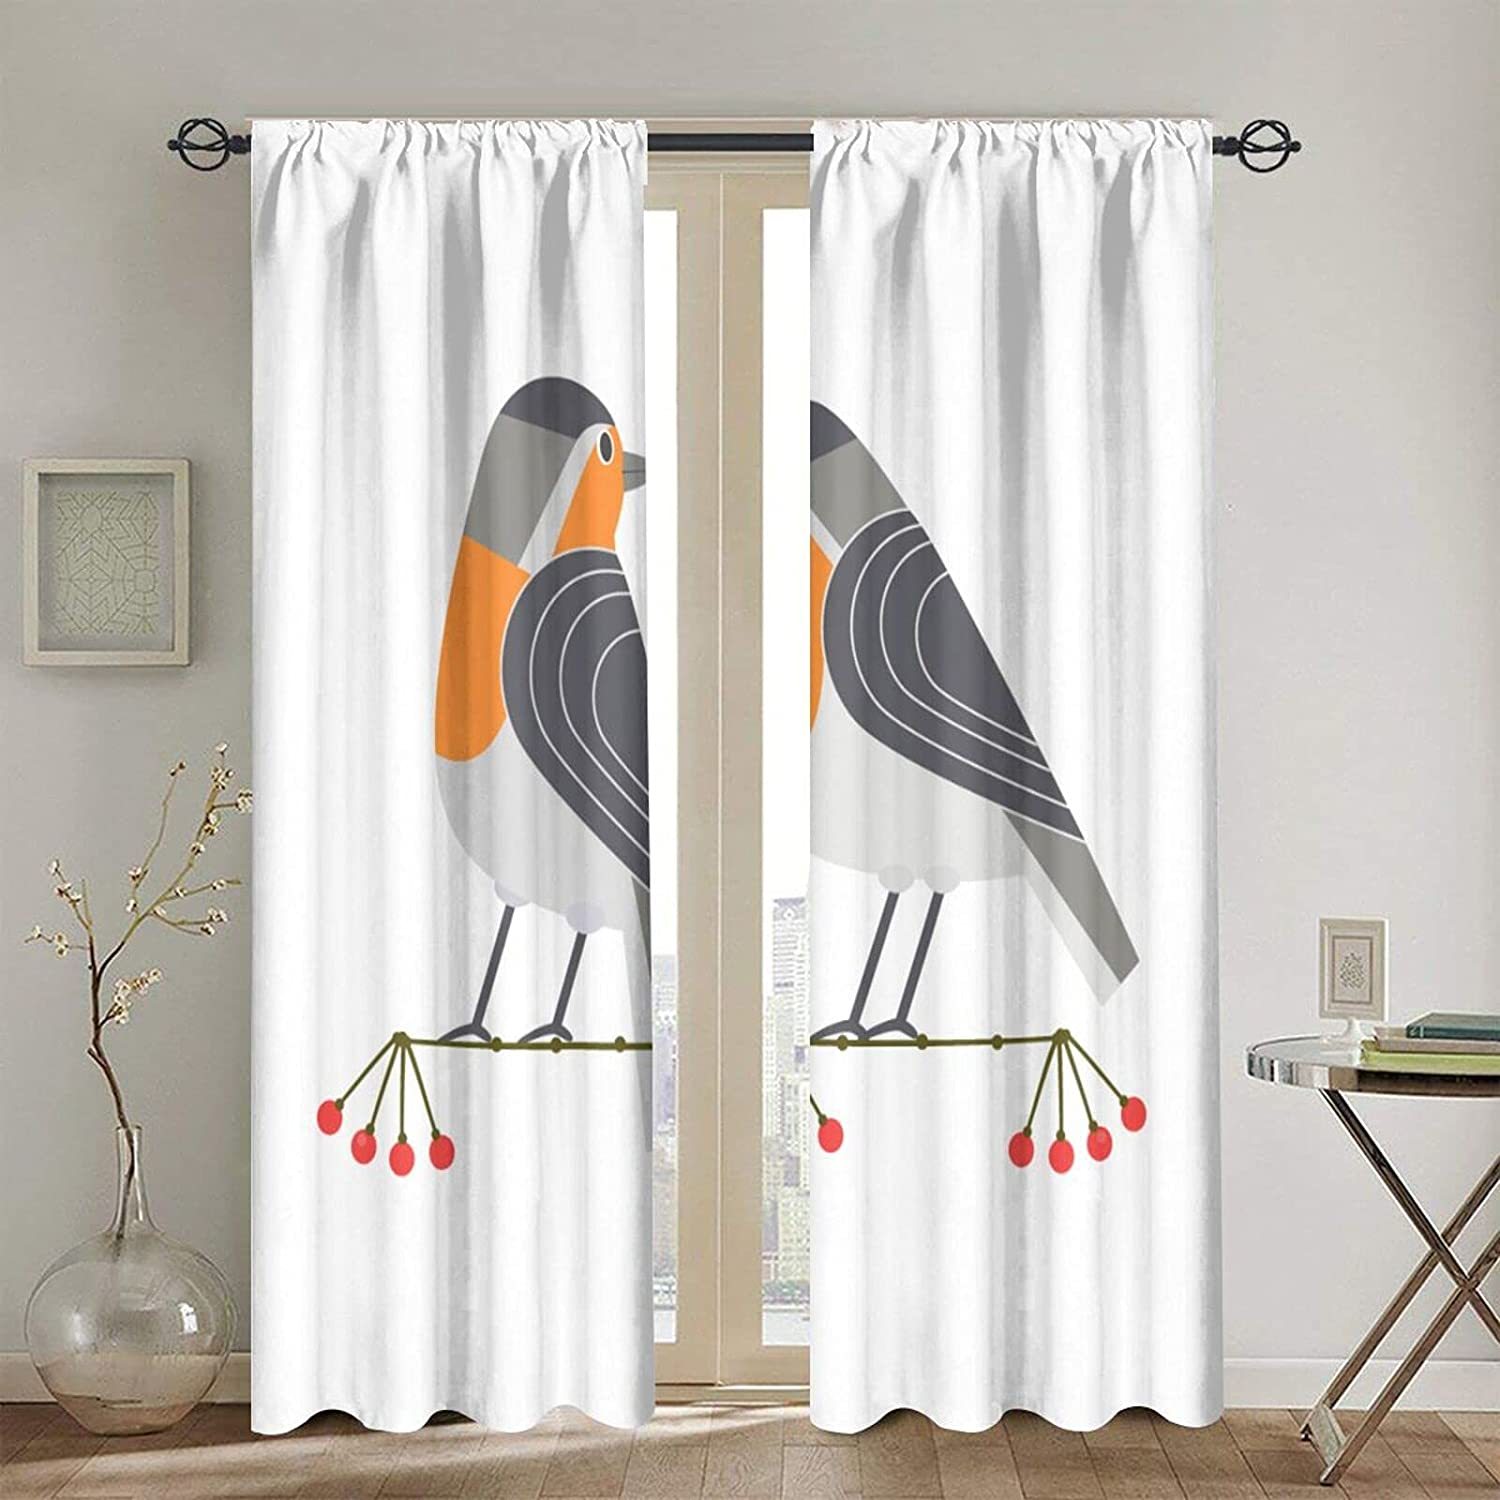 Blackout Minneapolis Mall Curtains Branded goods for Girls Boys Cute Icon Birds Freehand Robin